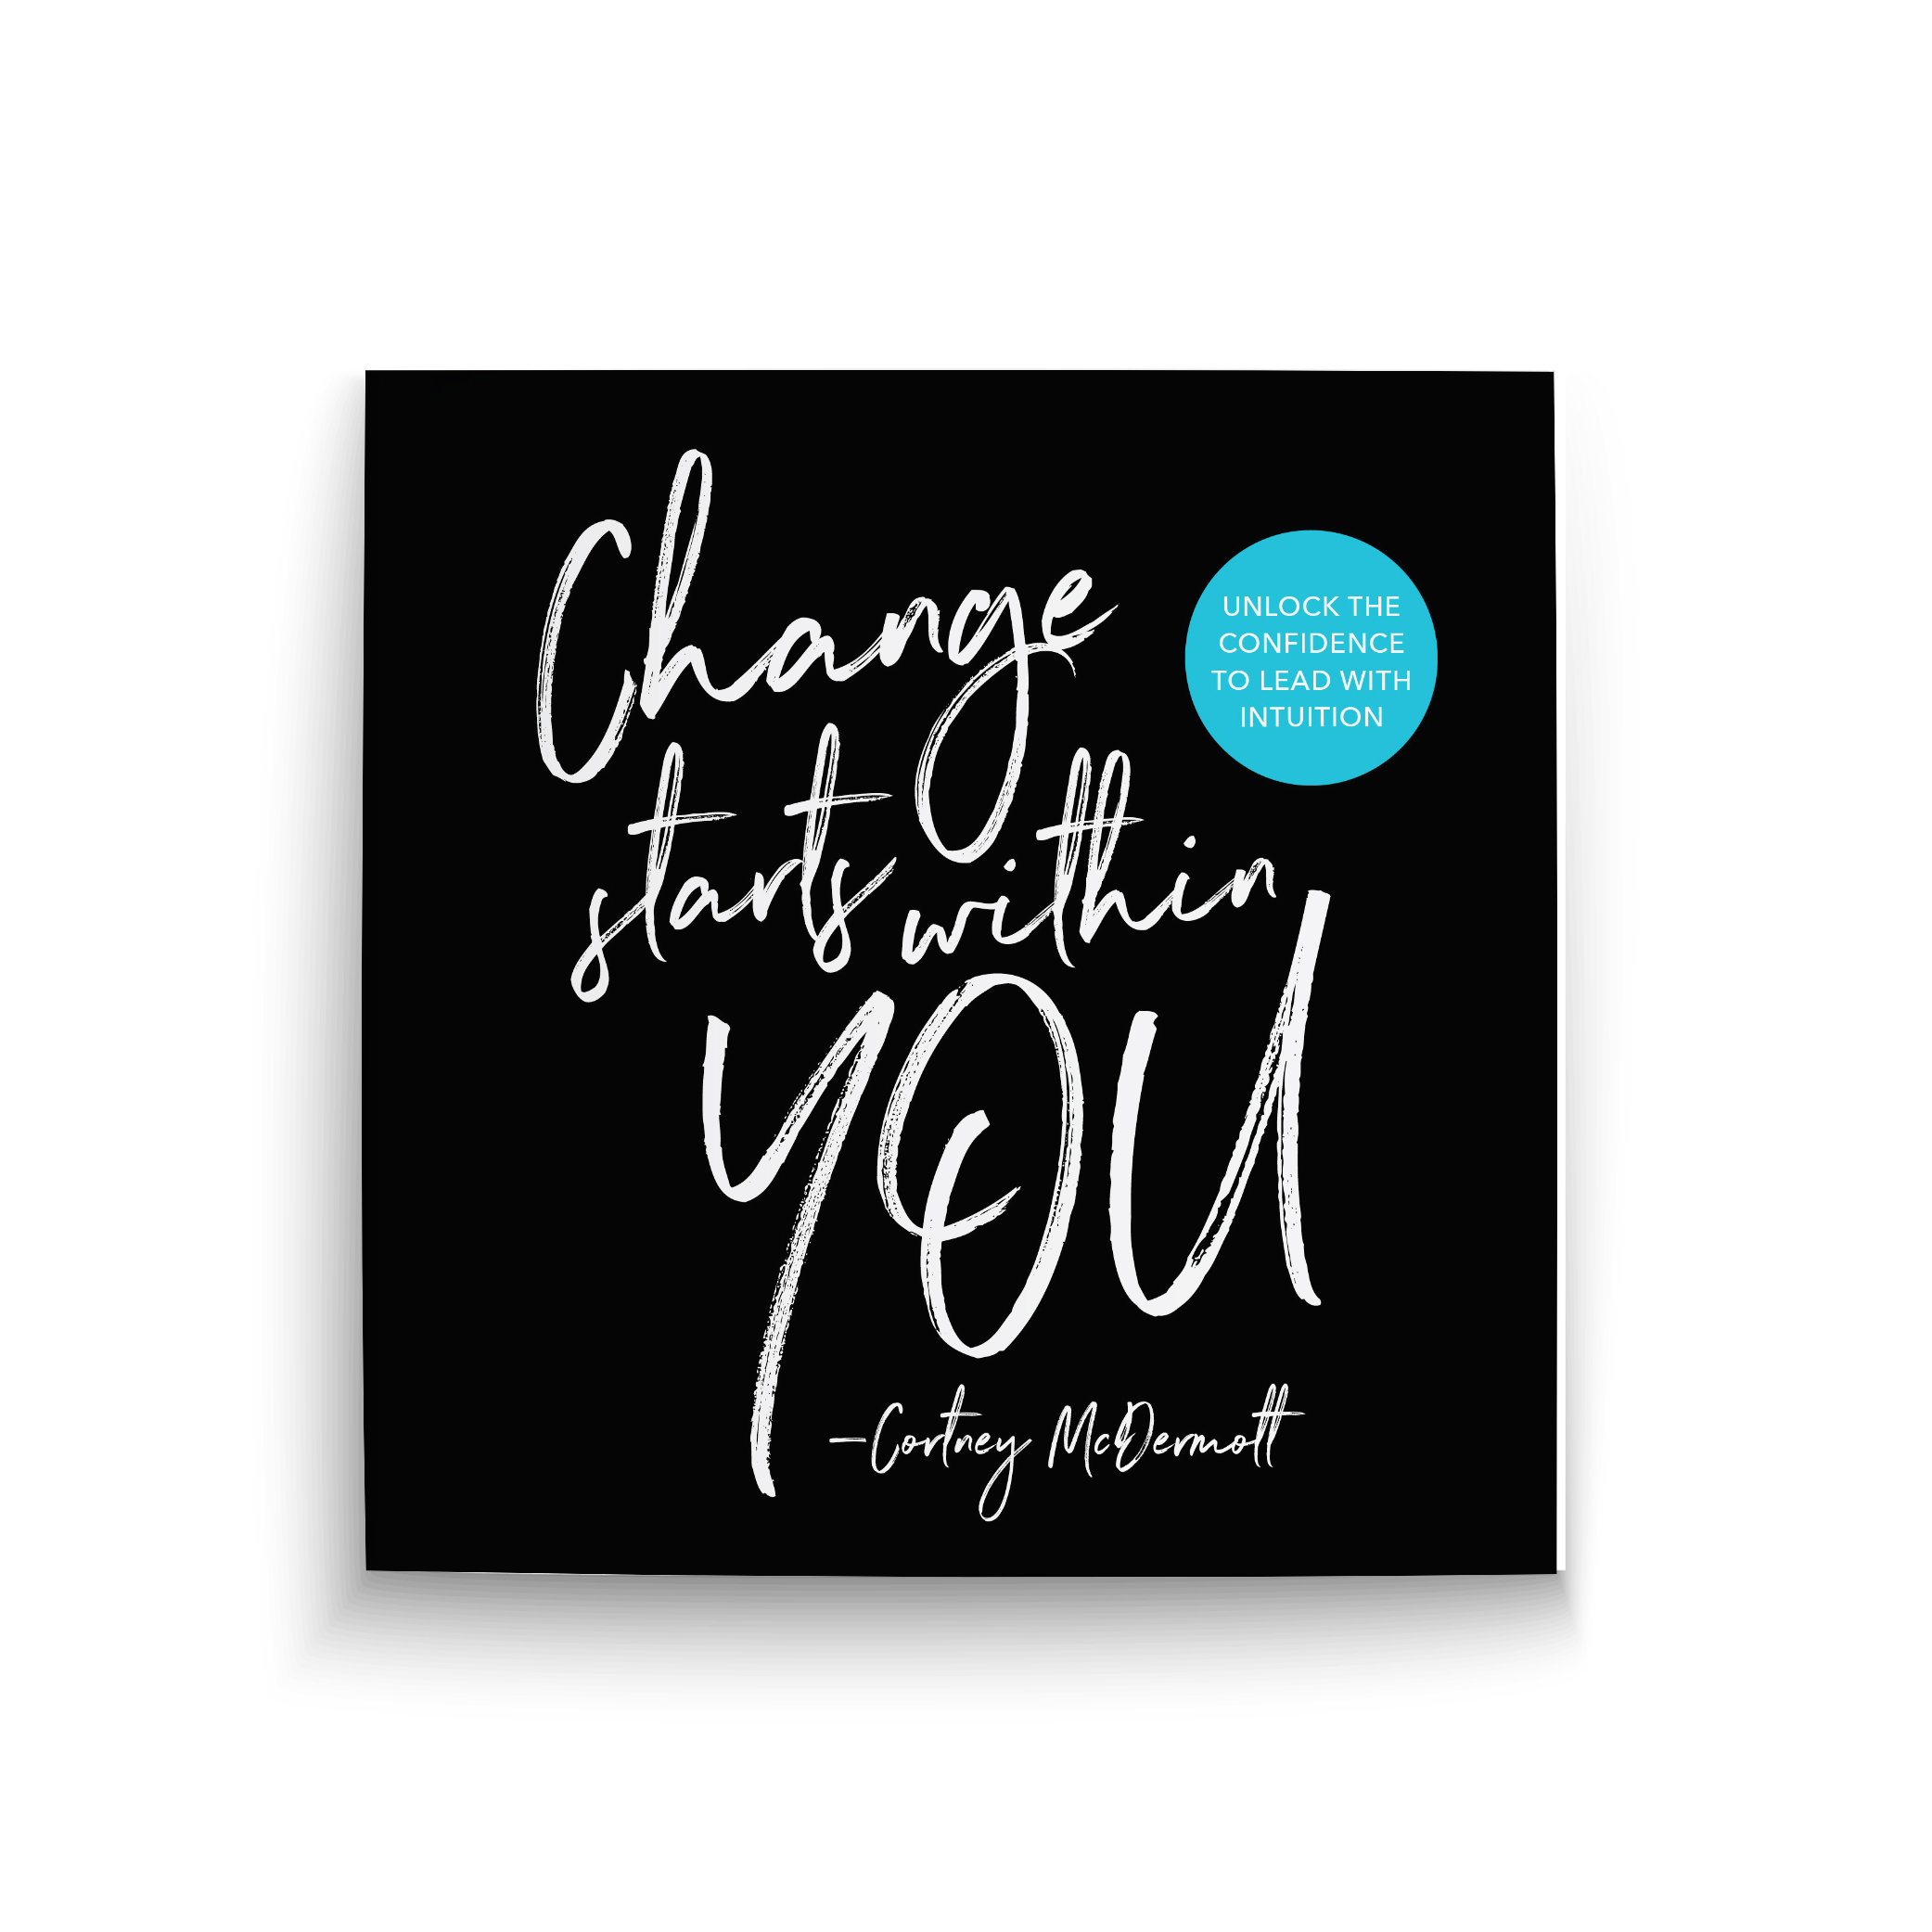 Change Starts Within You - Cortney McDermott